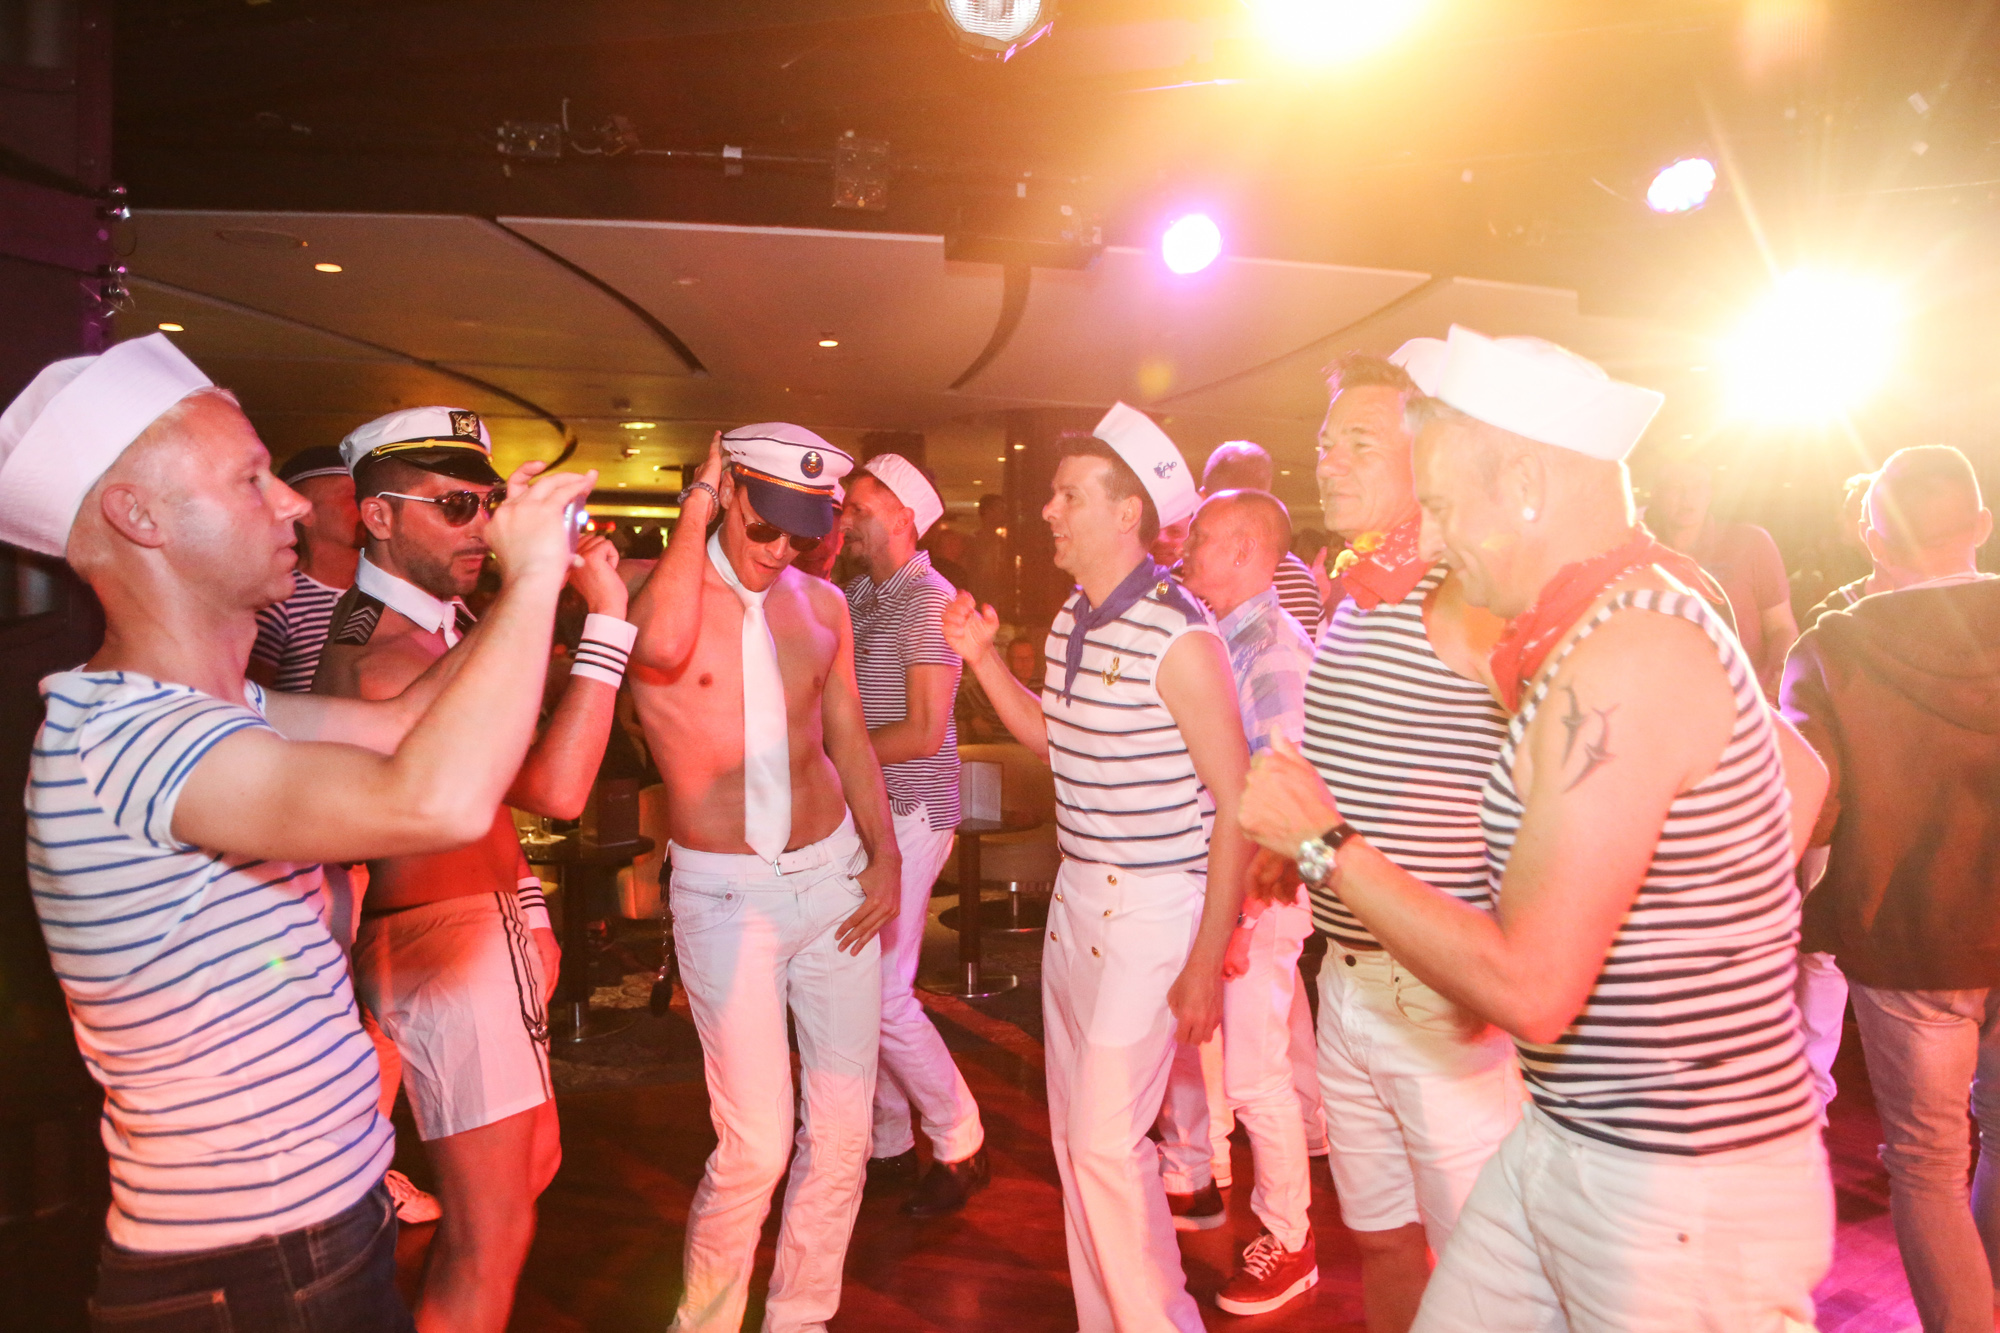 Party ahoi: Matrösen Party auf der Rainbow Cruise